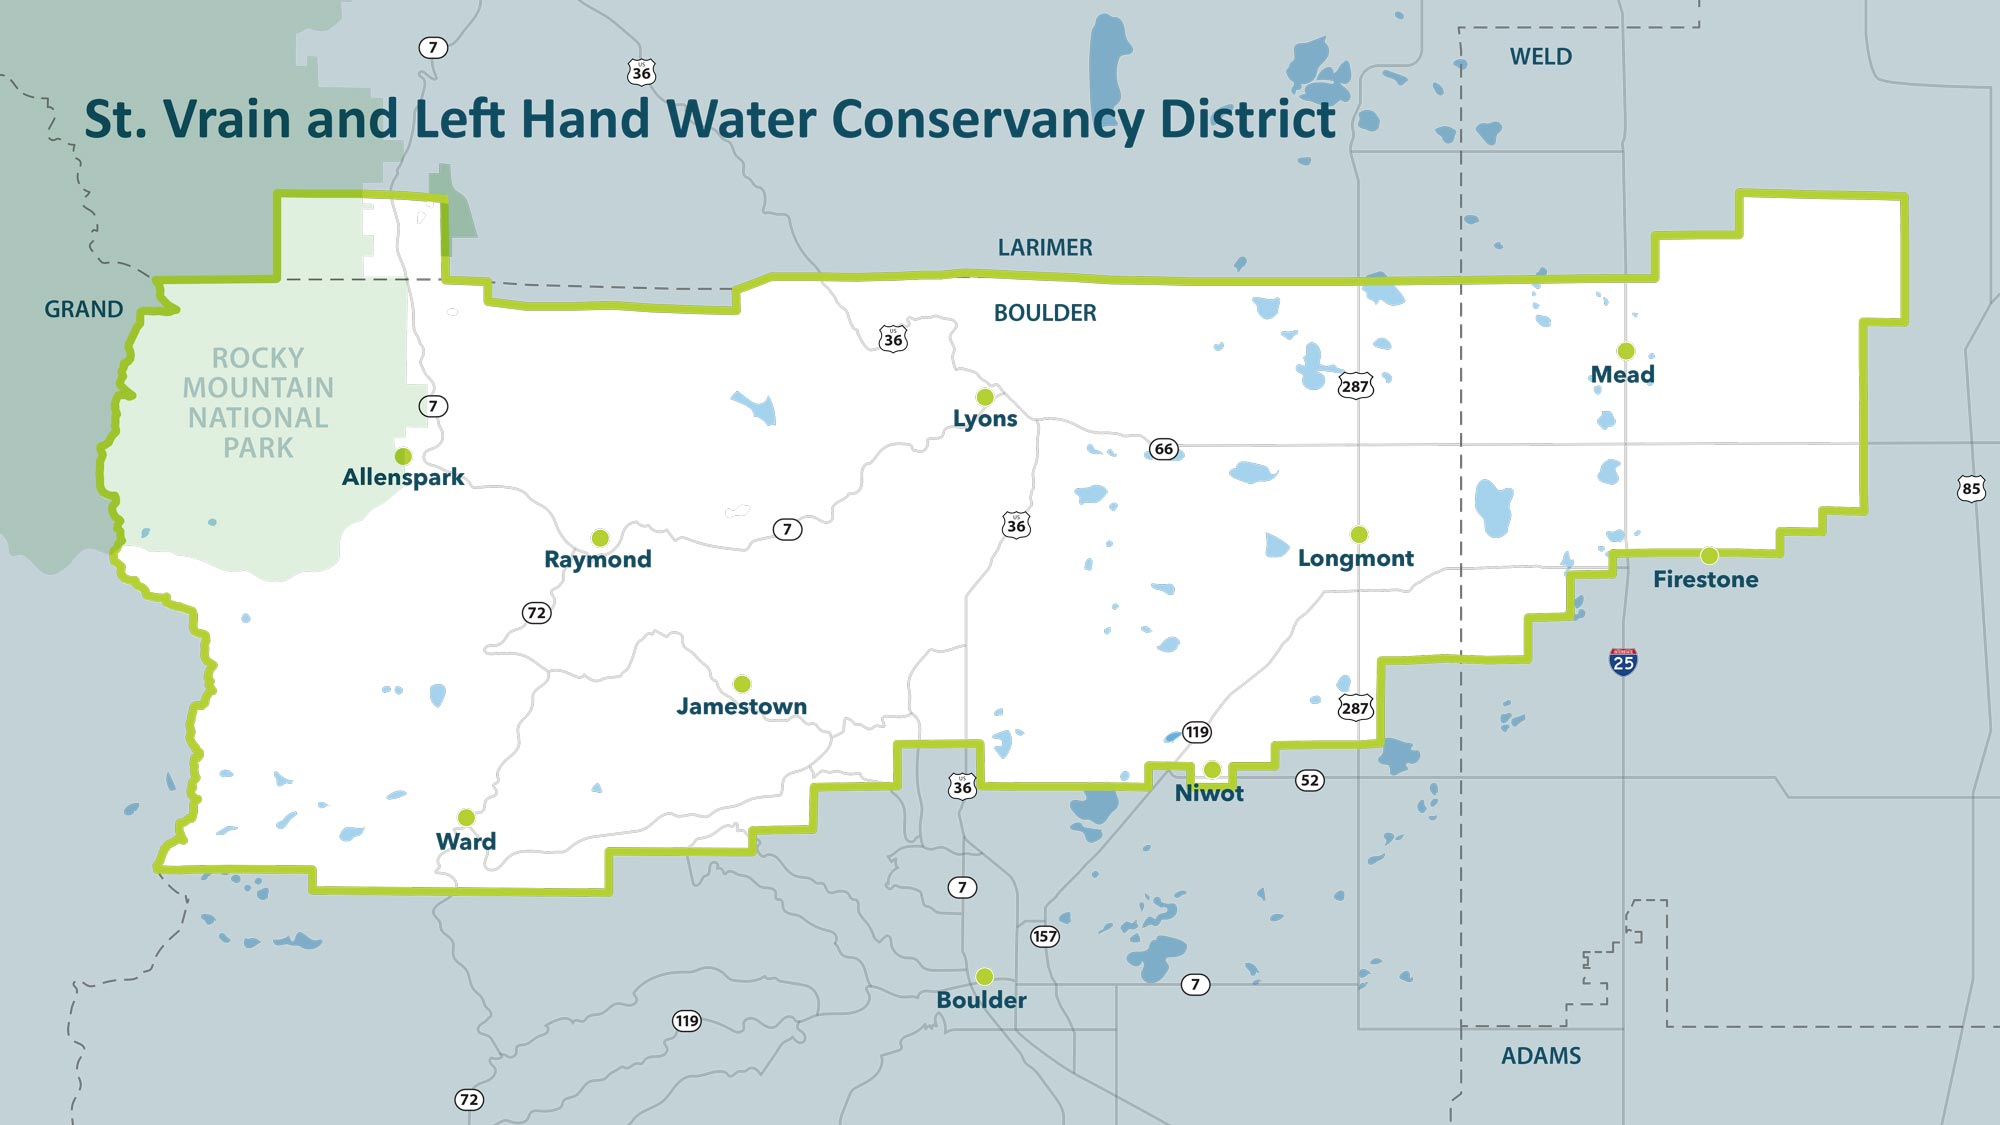 St. Vrain and Left Hand Water Conservancy District